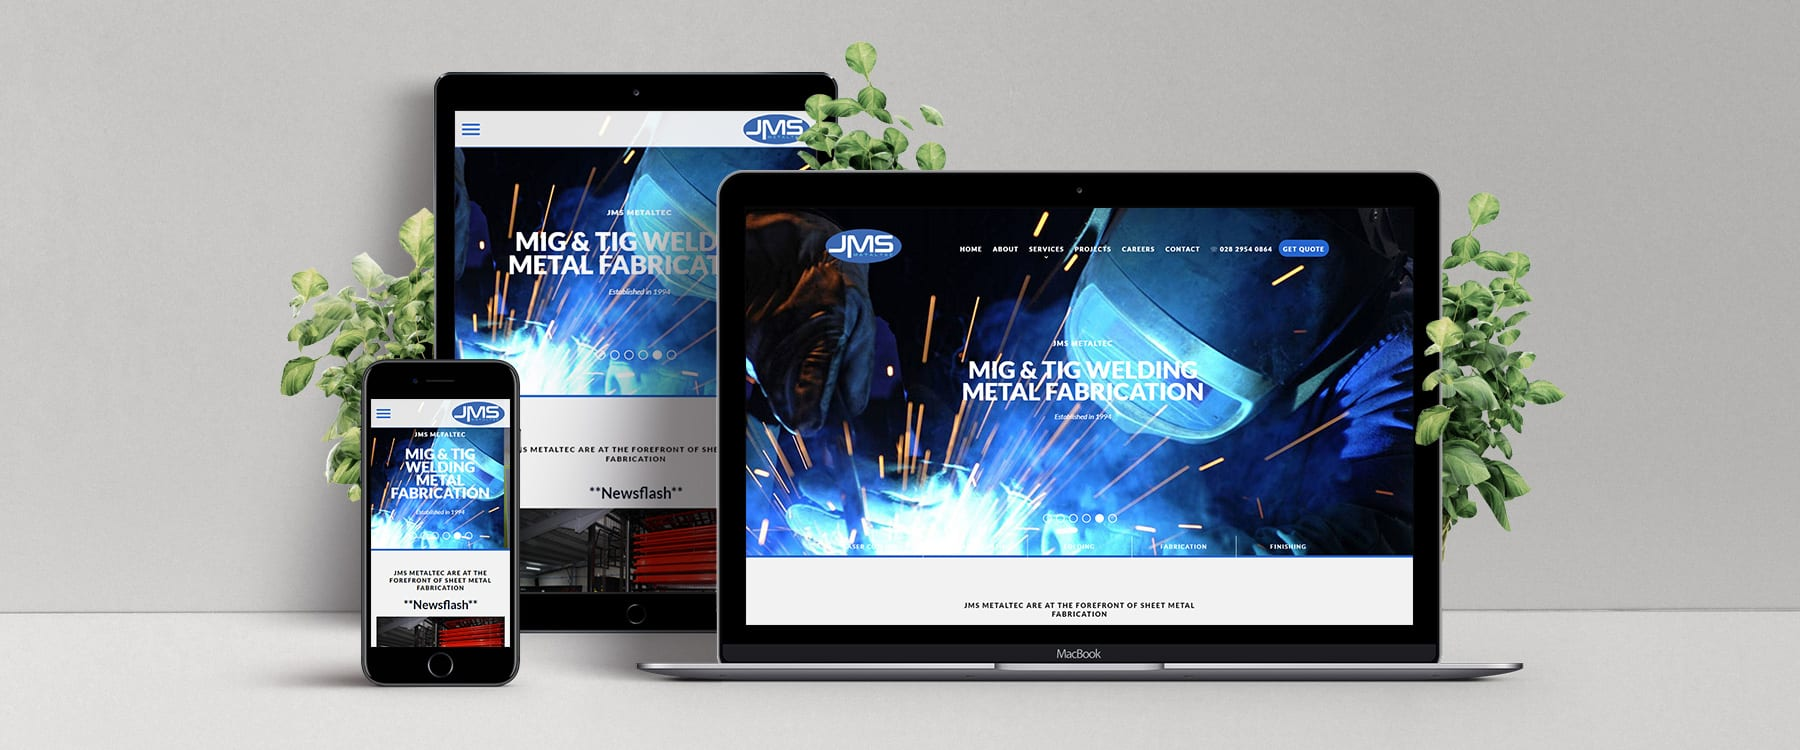 Website Redesign for Sheet Metal Fabrication Specialist, JMS Metaltec Image